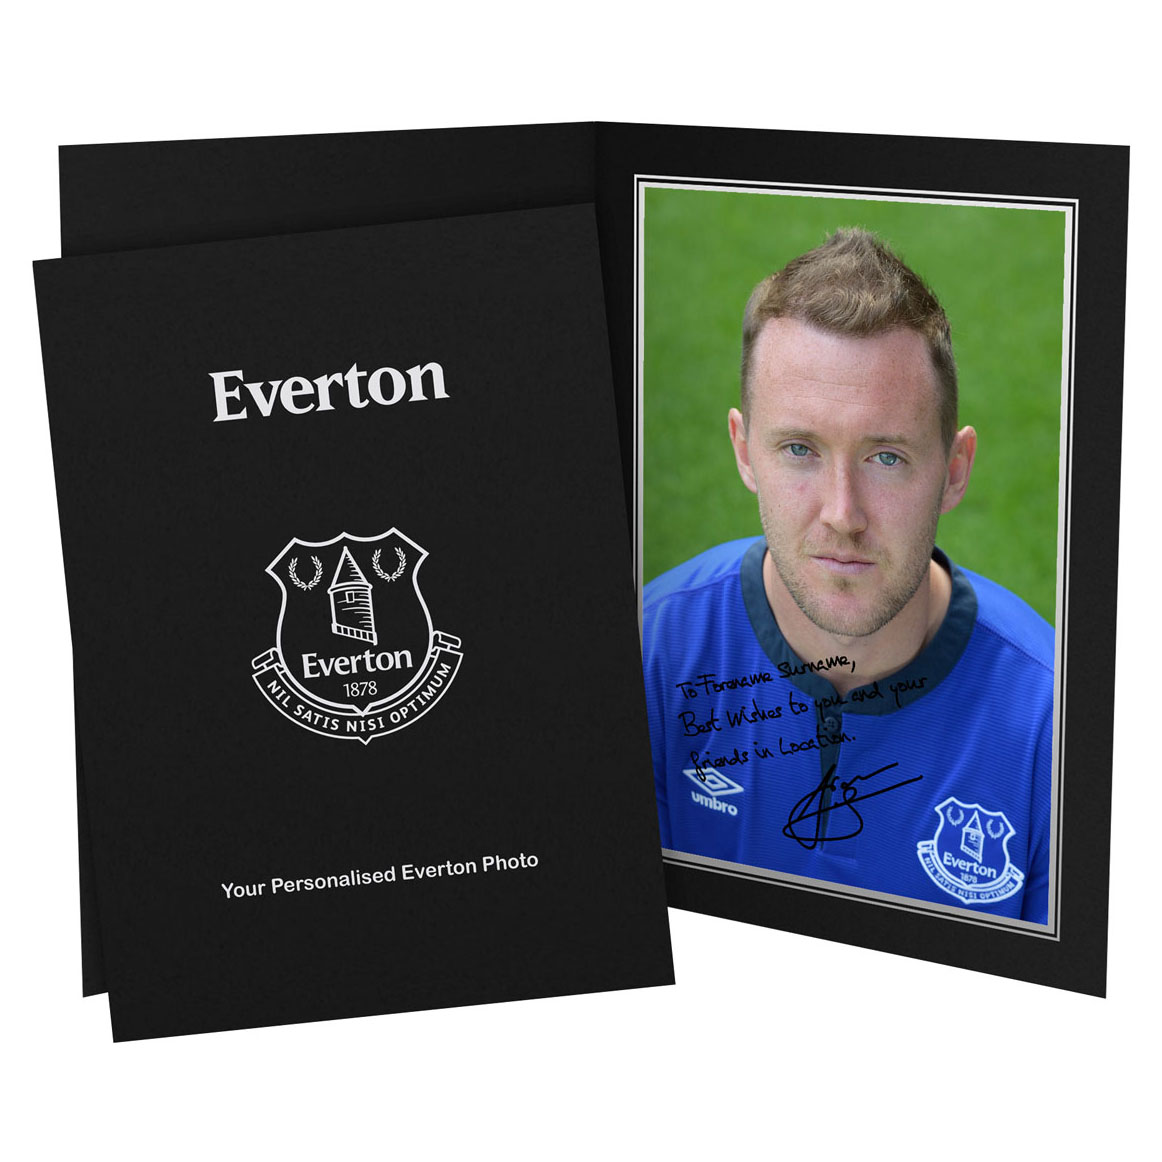 Everton Personalised Signature Photo in Presentation Folder - McGeady